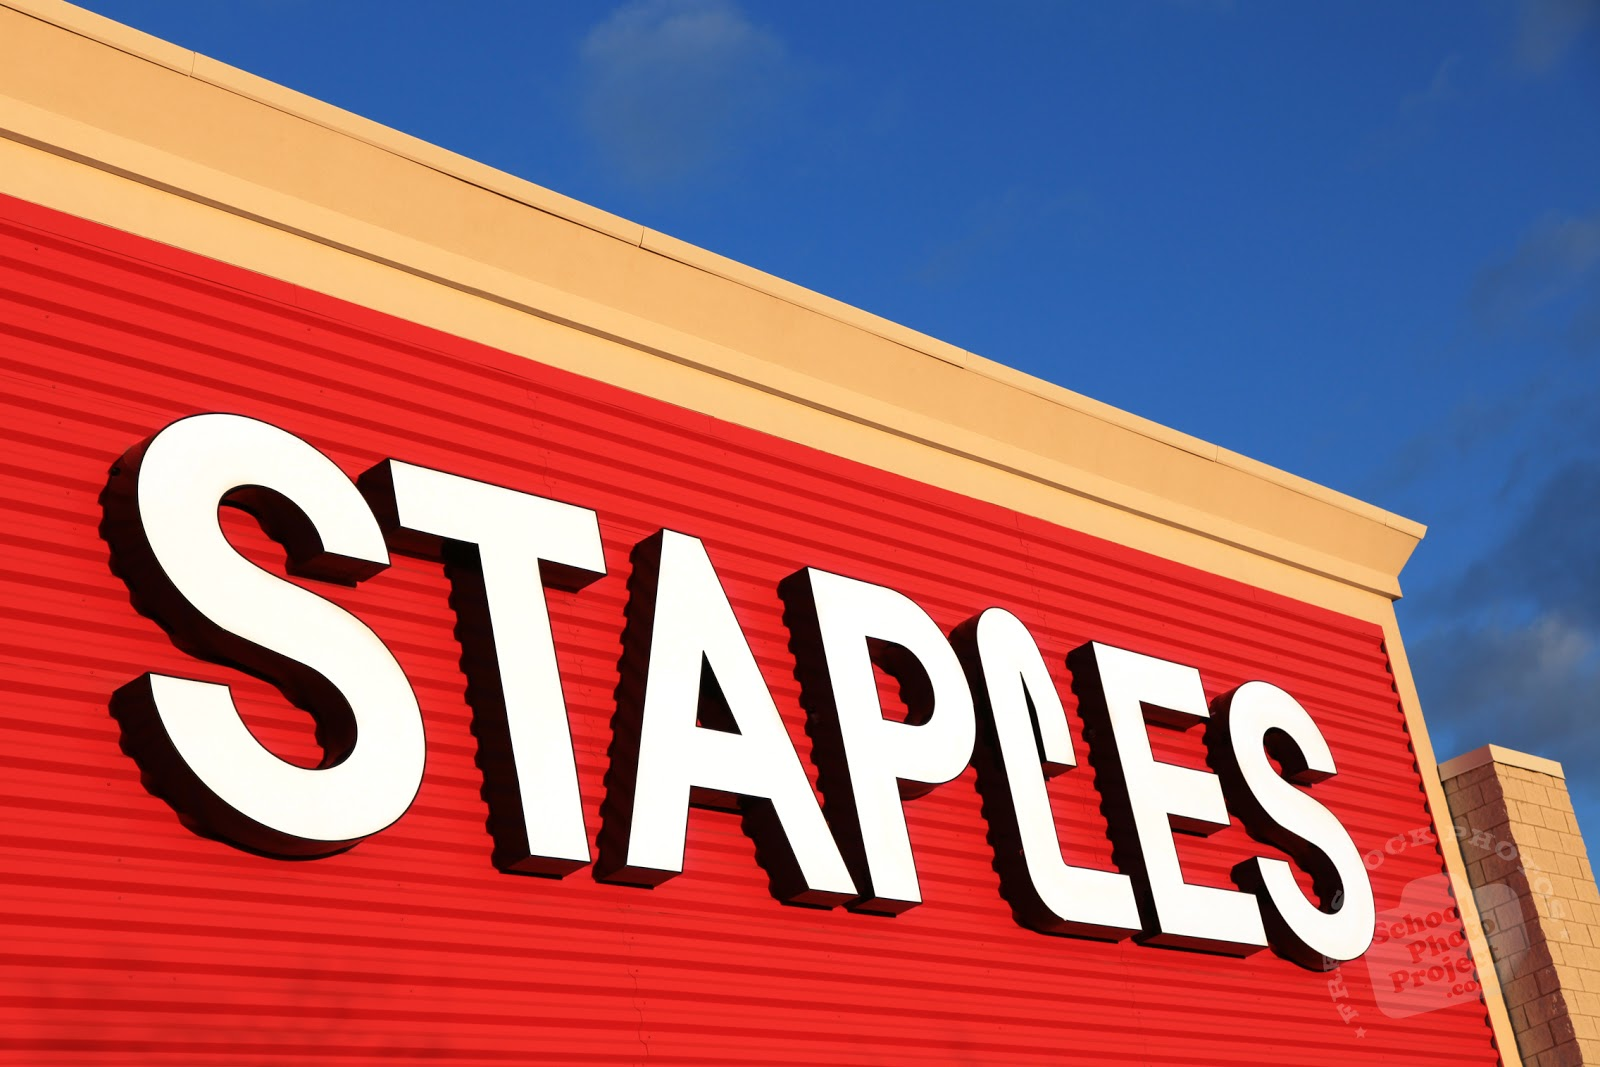 Staples is the world's largest office products company and a trusted source for office solutions, providing products, services and expertise in office supplies, technology, furniture and Copy & Print services.